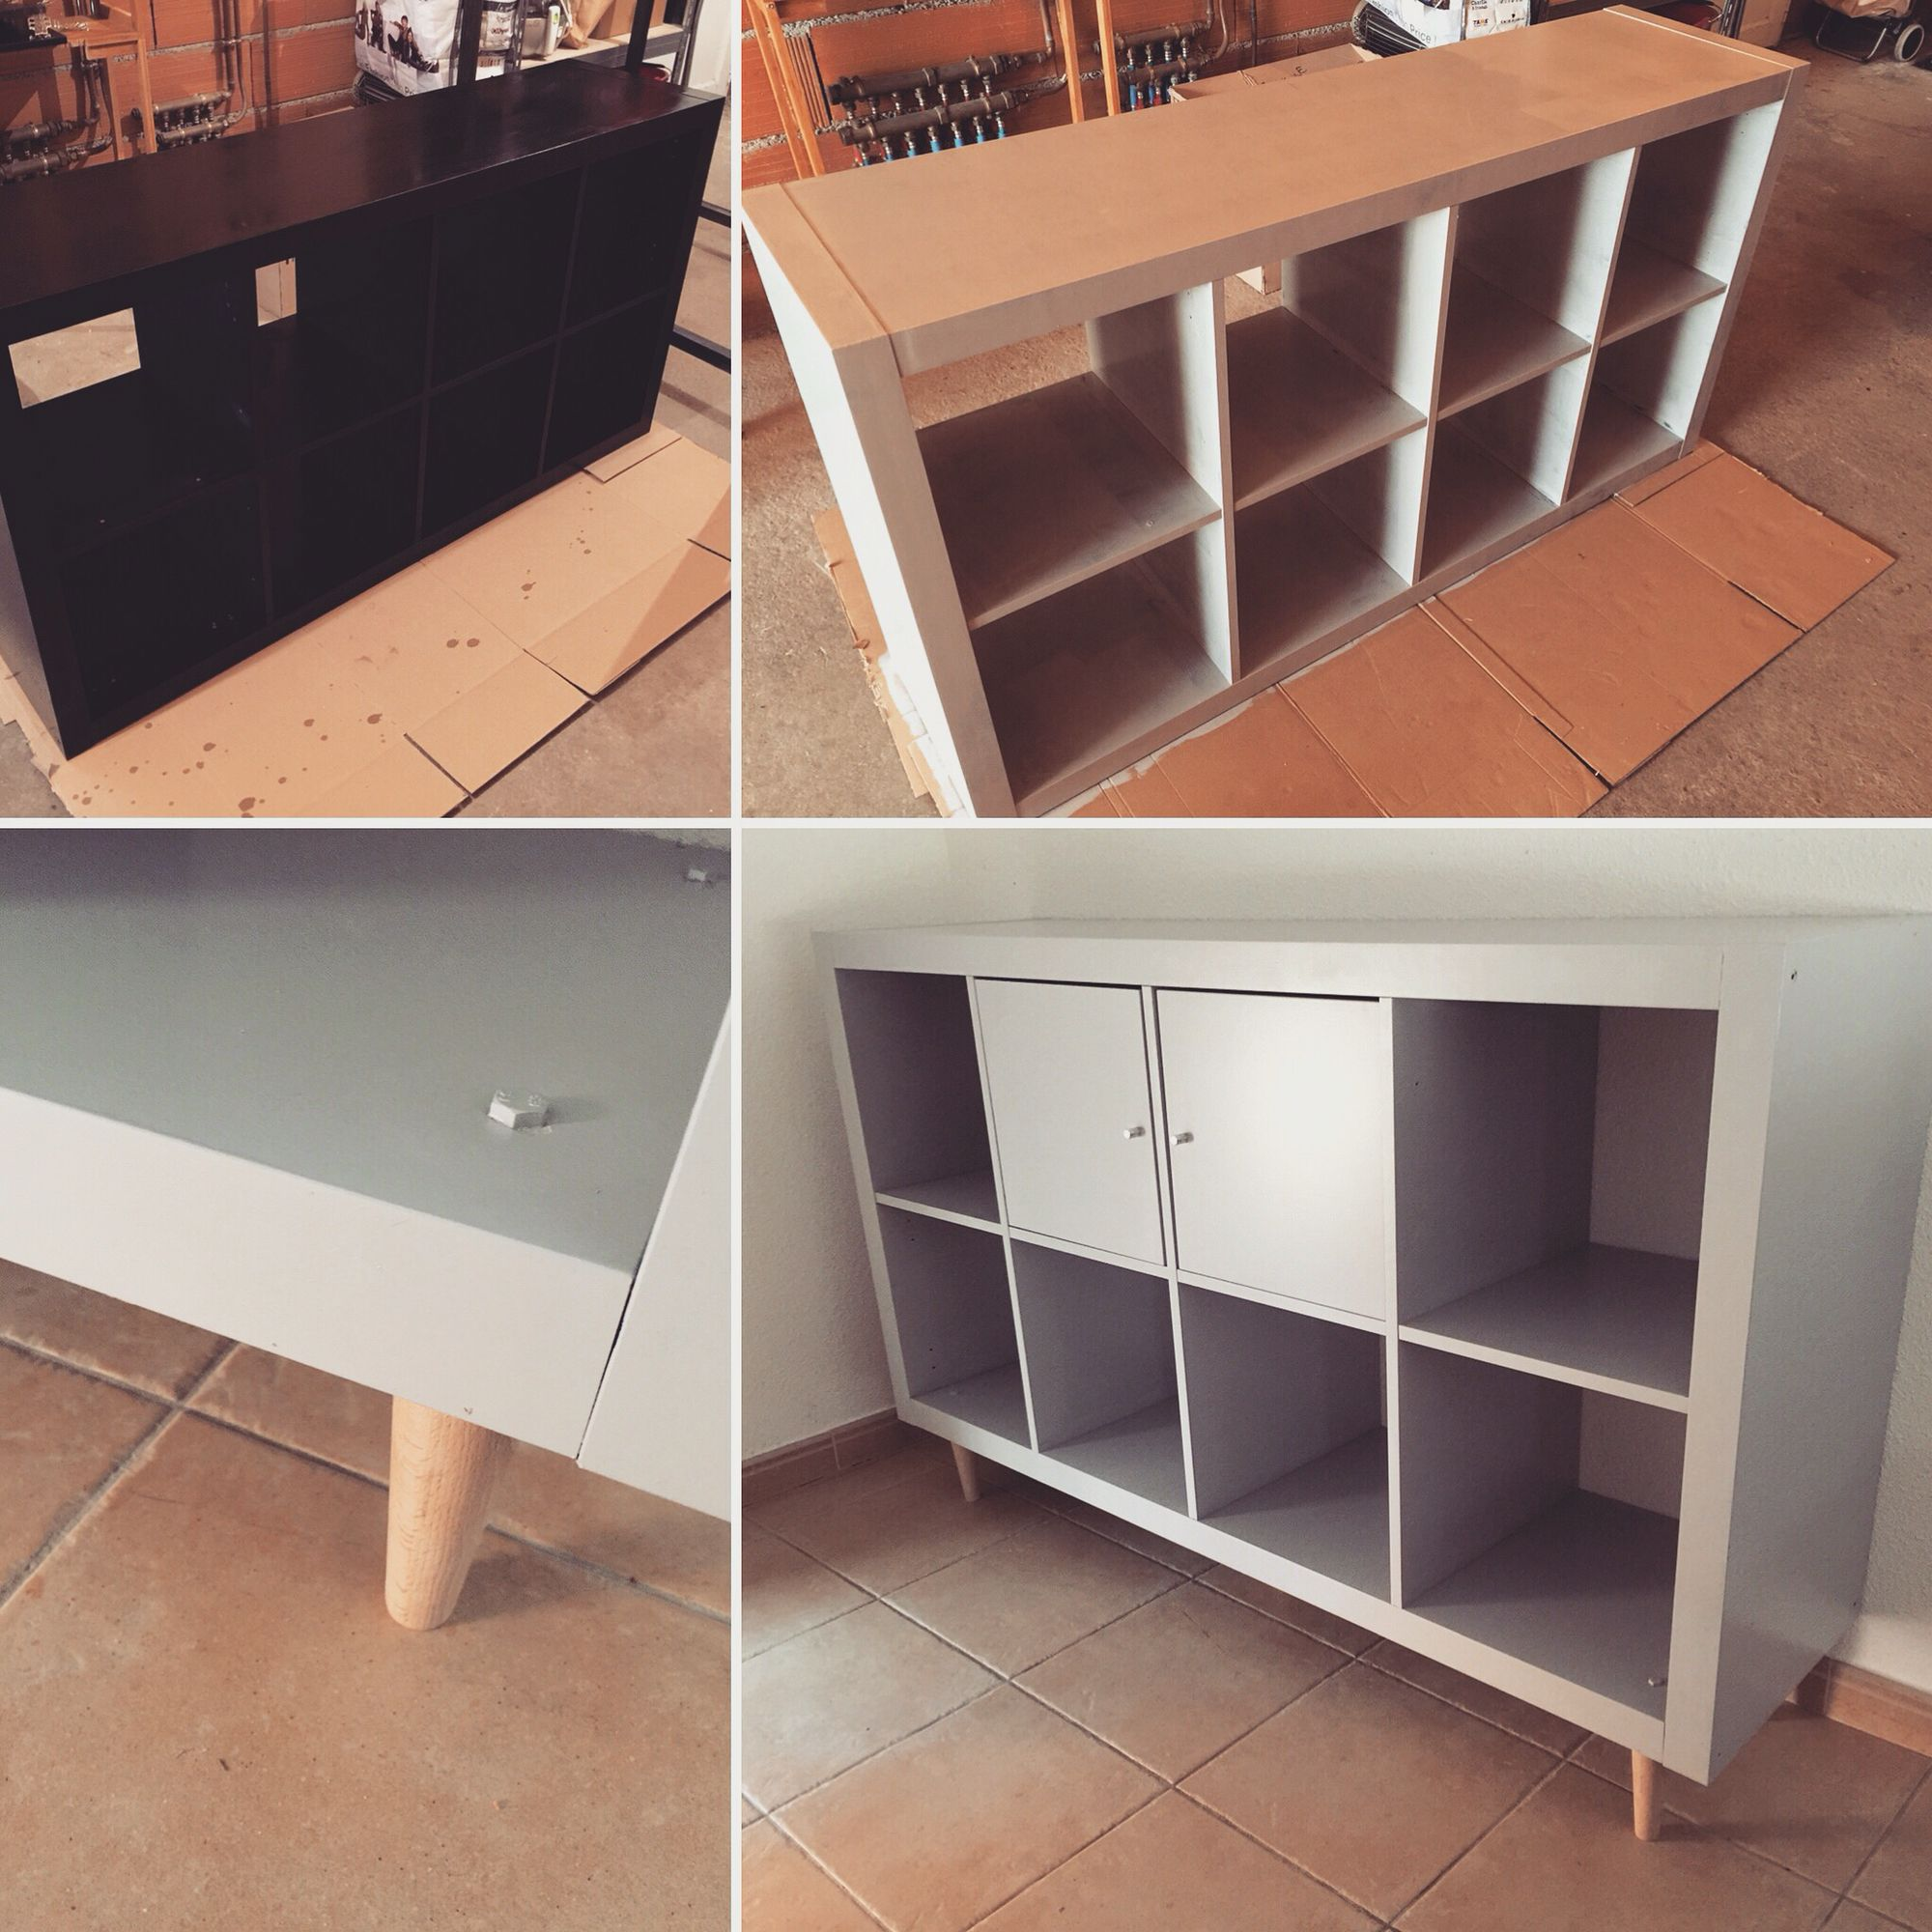 Customiser Meuble Ikea - Customiser Un Meuble Ikea Kallax Ou Expedit Cr Ation By Delph Ine [mjhdah]http://bfrench.info/wp-content/uploads/2017/12/customisation-meuble-diy-customiser-un-meuble-chaussures-ikea-of-customisation-meuble.jpg